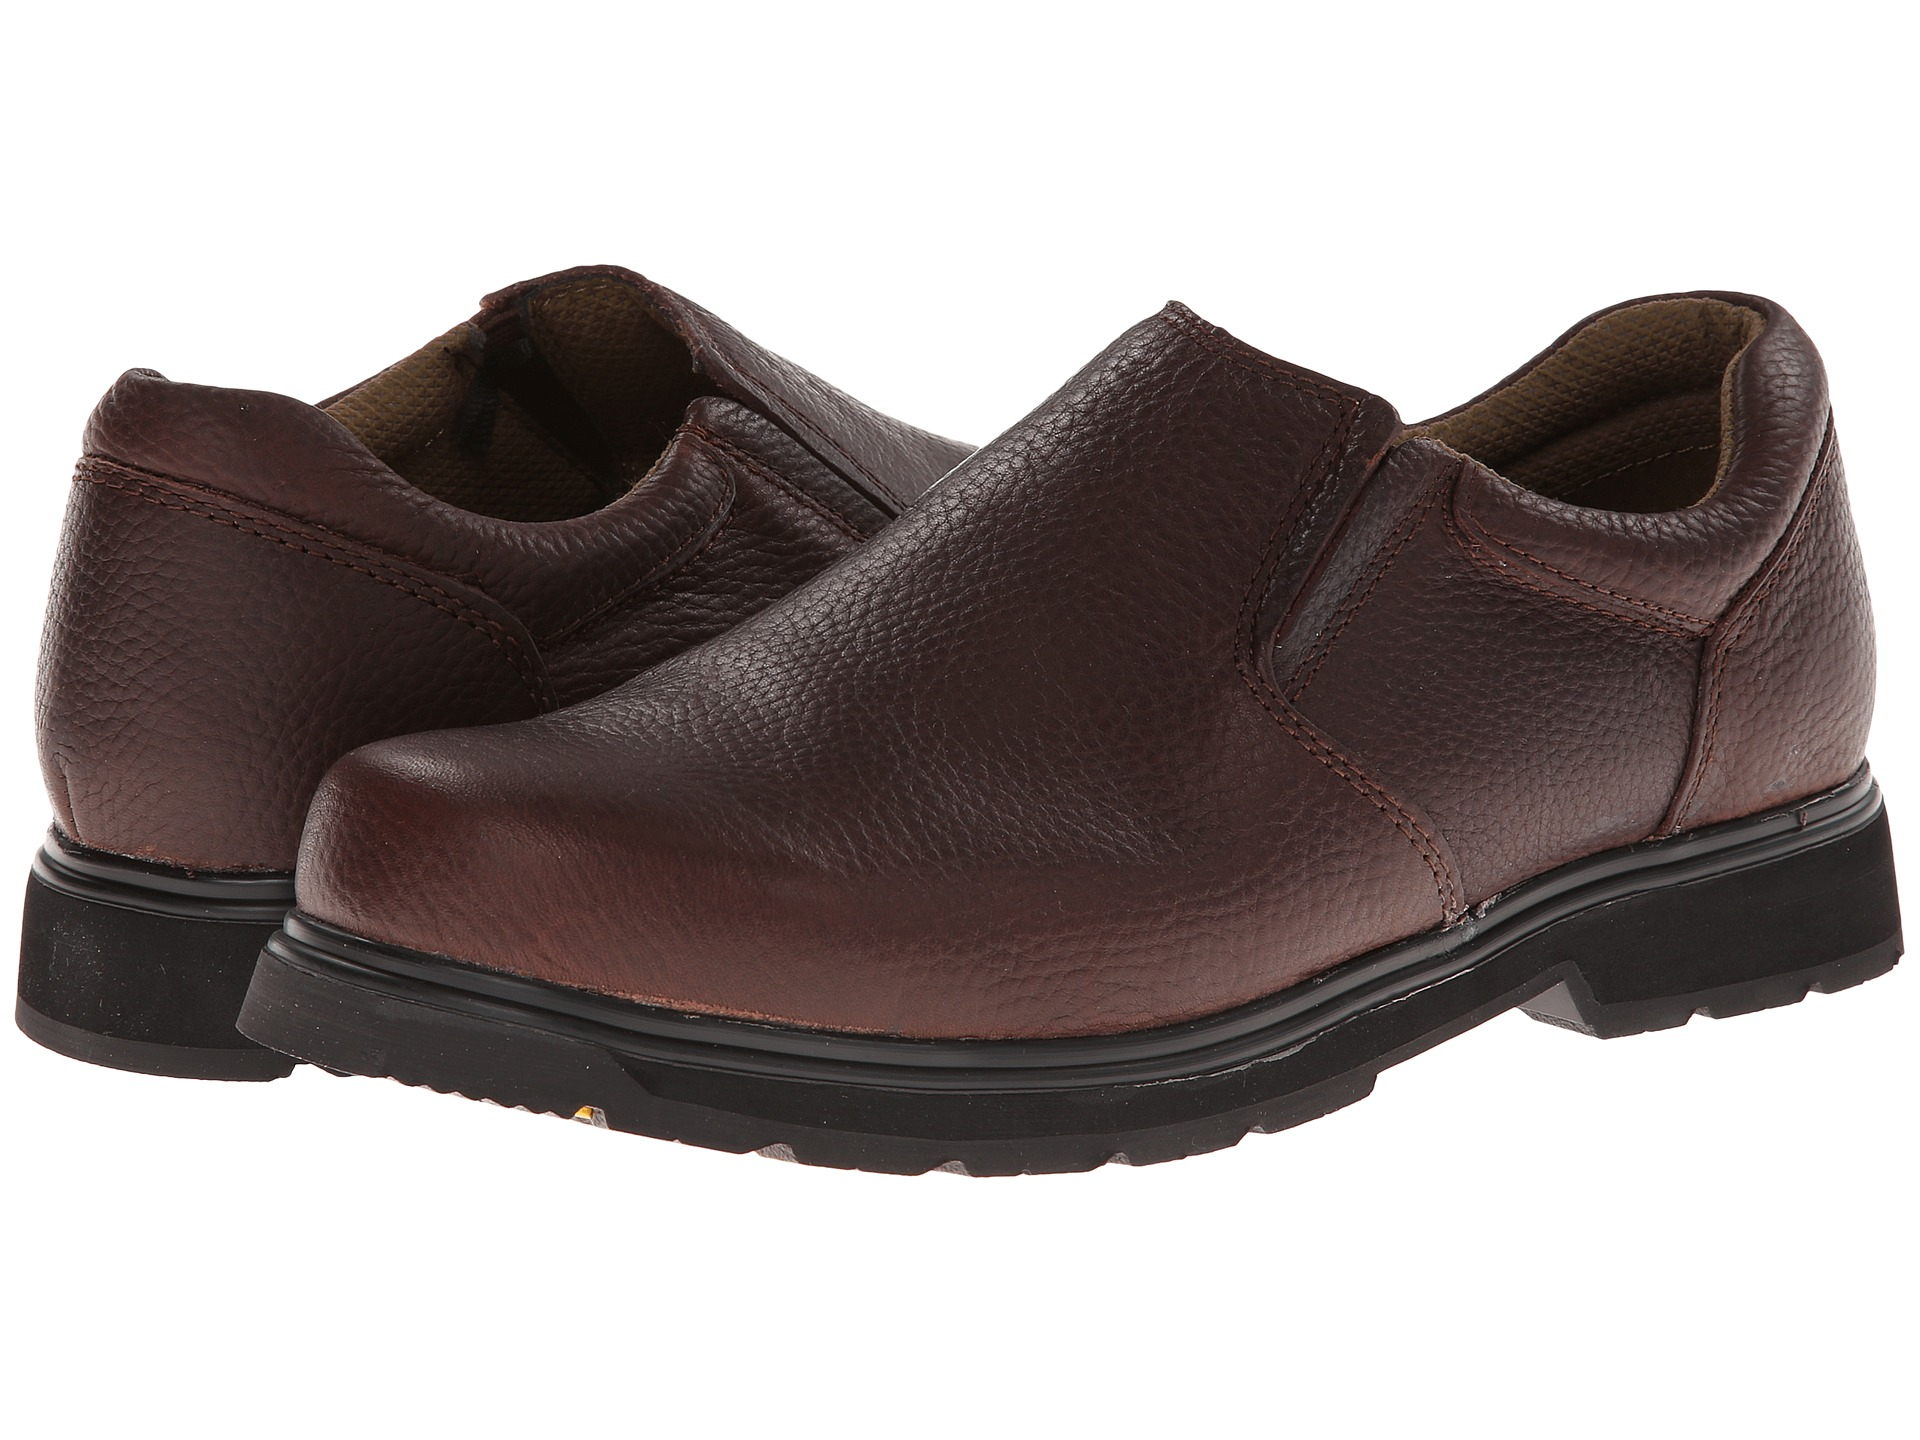 Dr Scholl S Men S Winder Slip Resistant Work Shoe